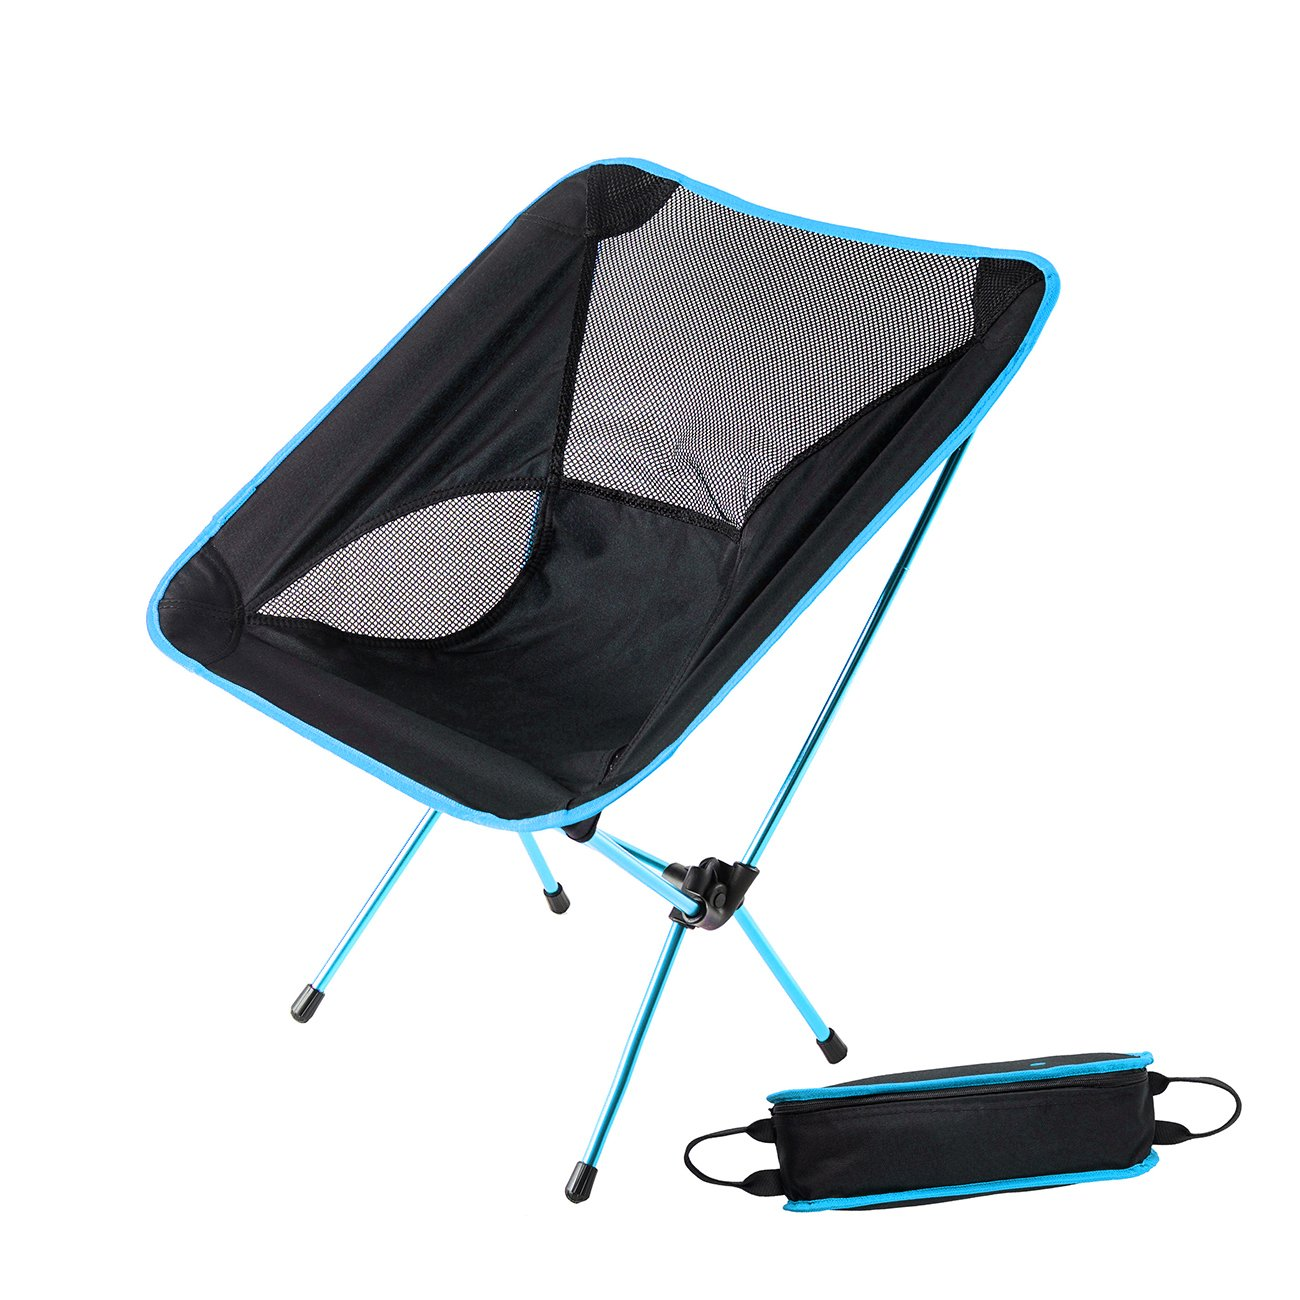 HASLE OUTFITTERS Camping Chairs, Ultralight Chairs, Moon Leisure Chair, Ultralight backpacking chair for Travel, Picnic, Beach, Fishing Blue